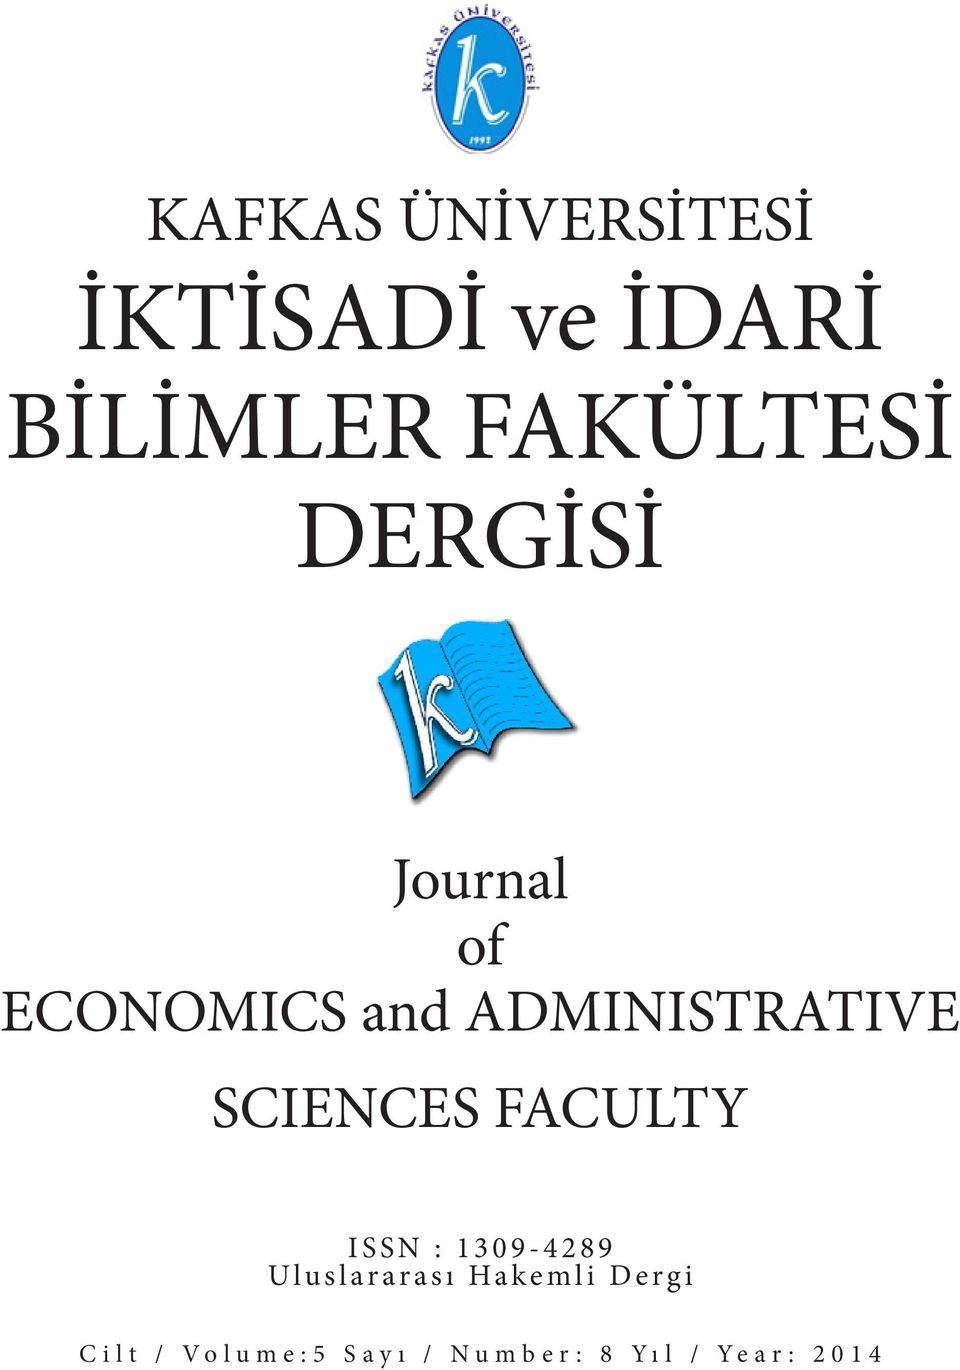 ADMINISTRATIVE SCIENCES FACULTY ISSN : 1309-4289